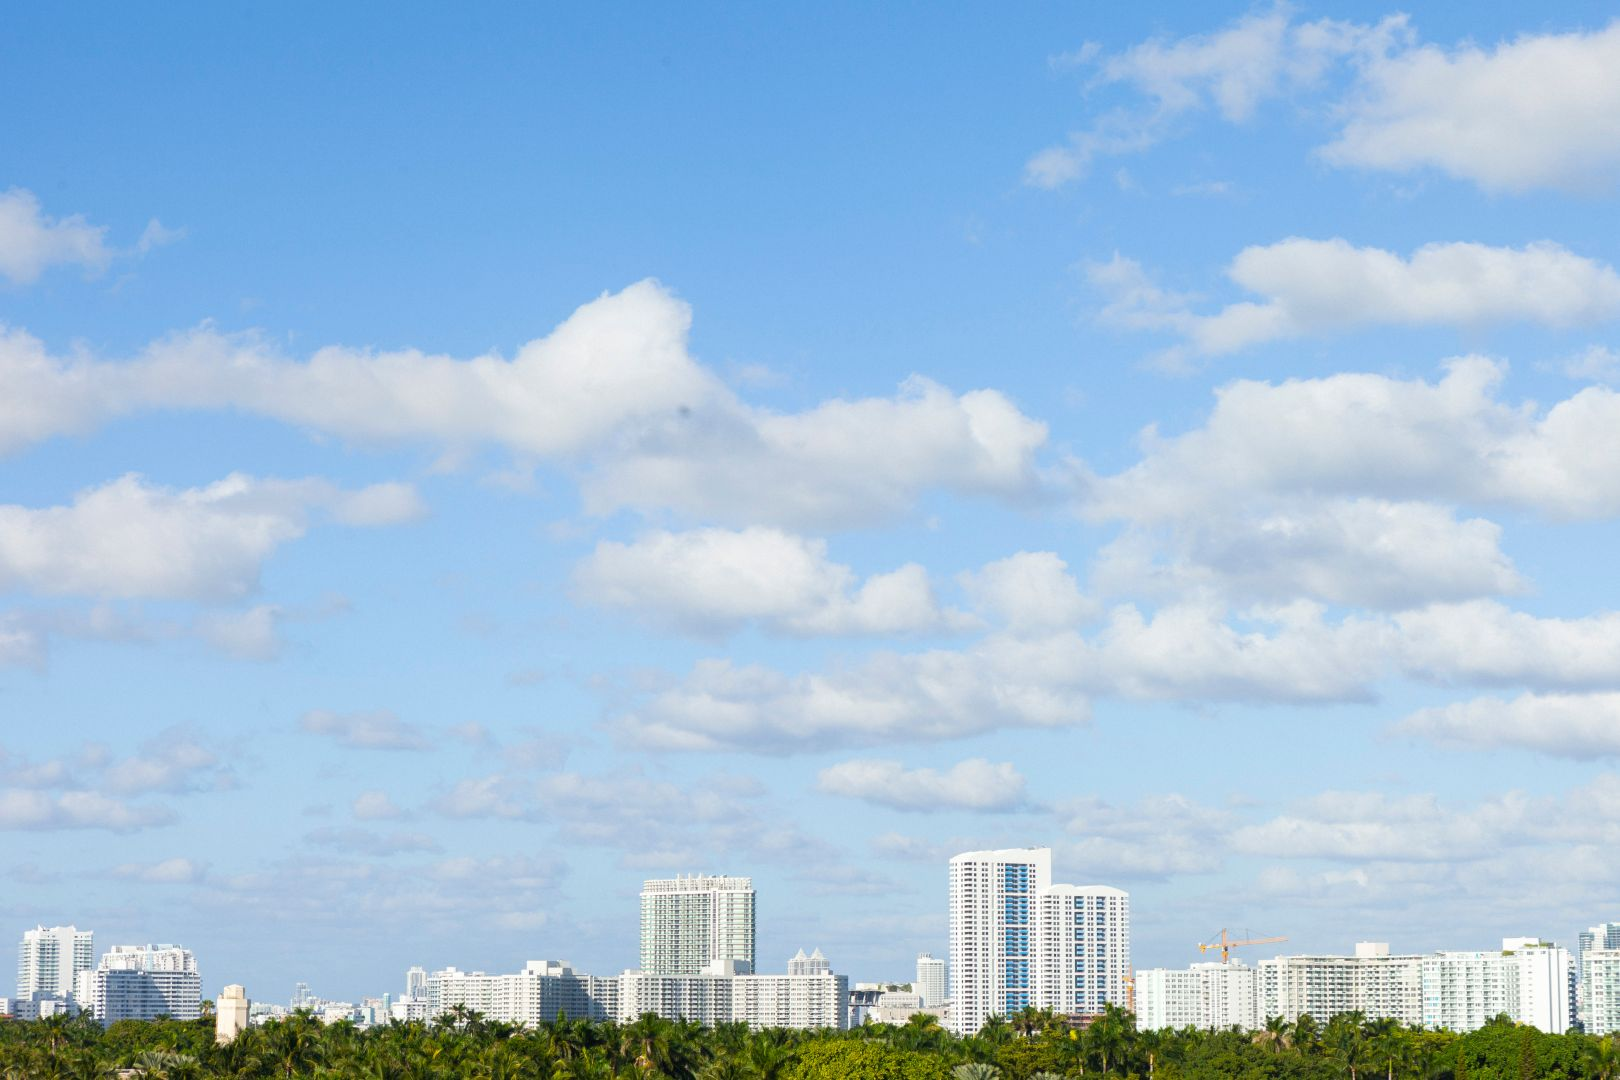 A photo depicting Florida Stock images 5